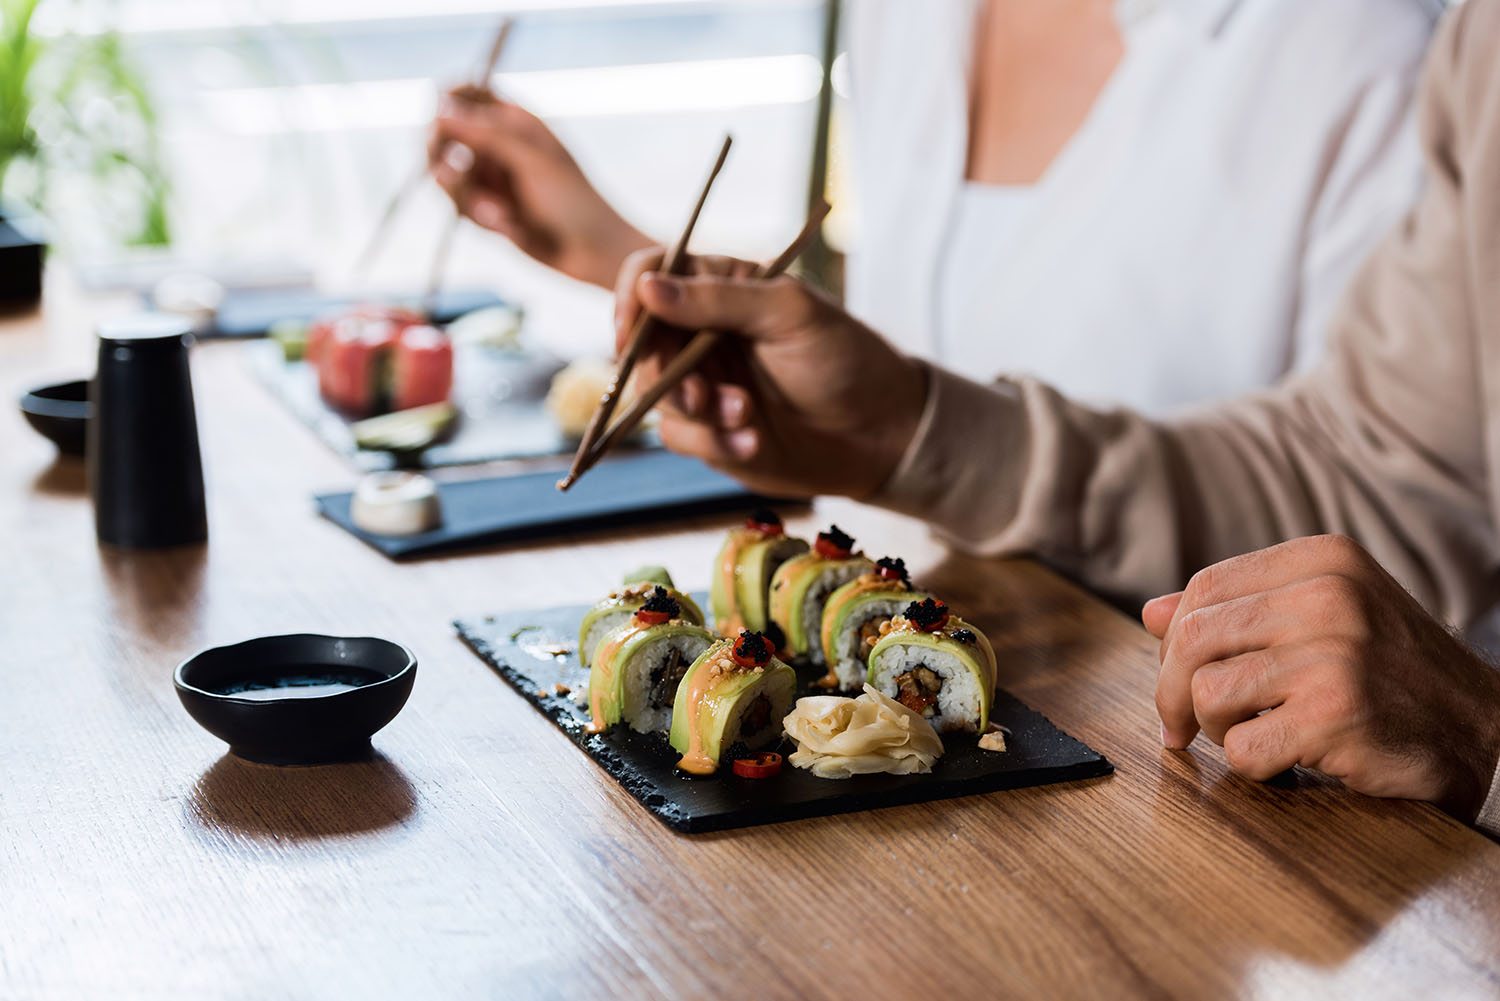 A couple eating sushi at a restaurant.